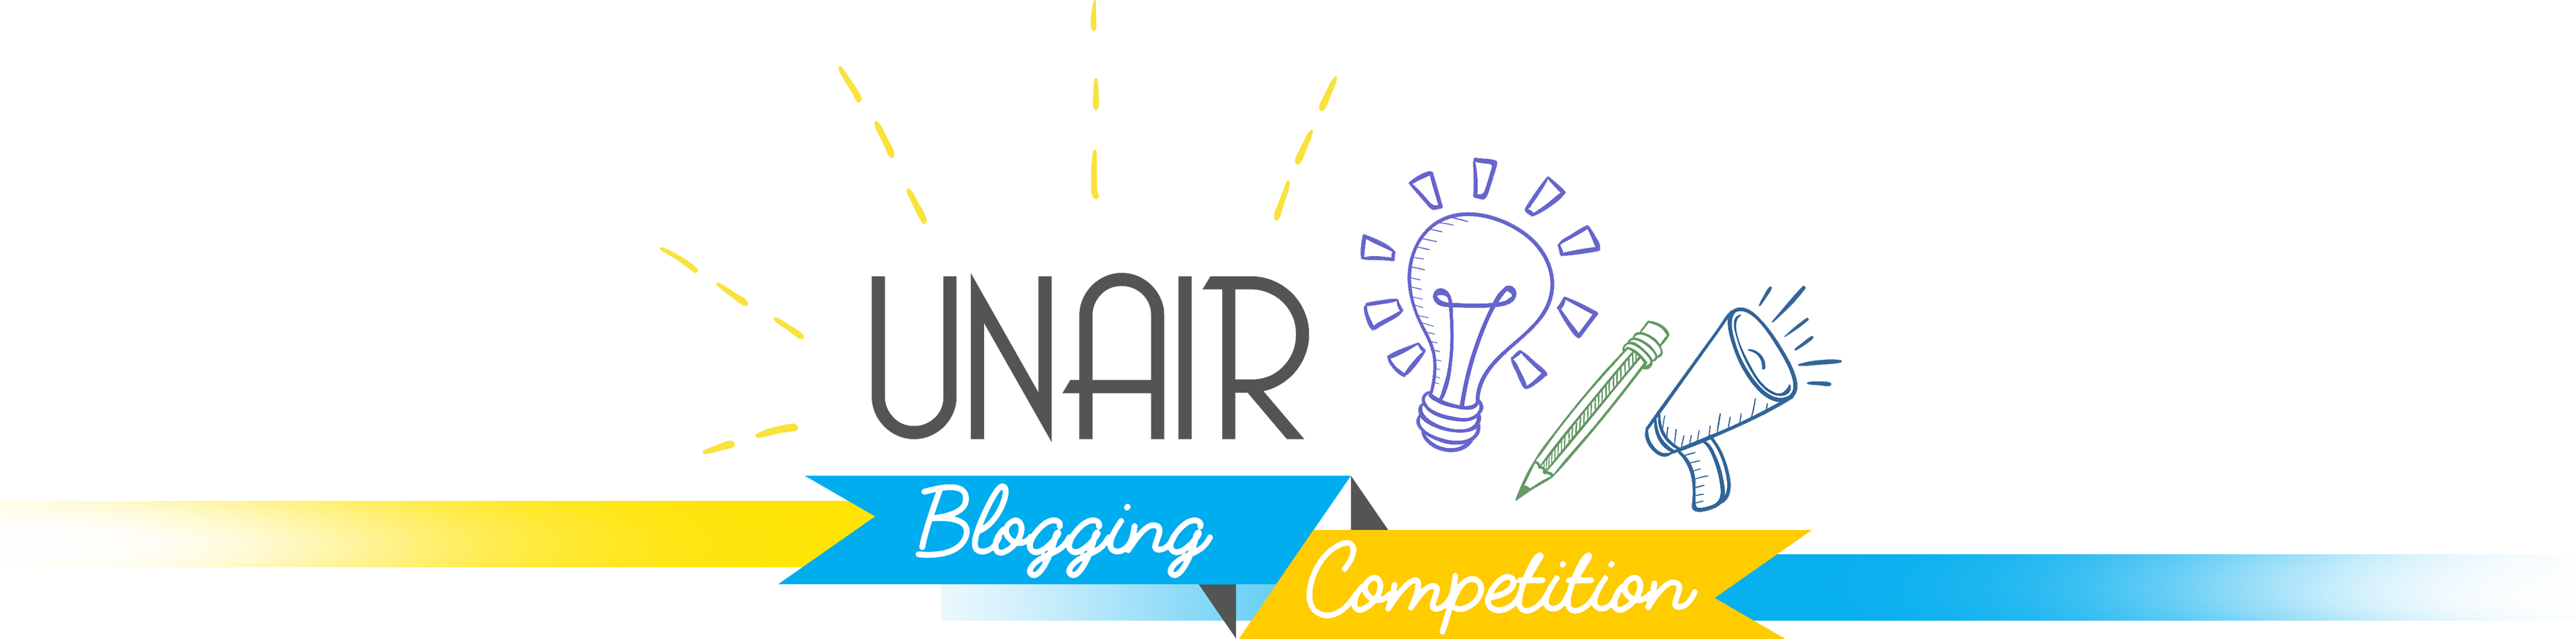 Unair Blogging Competition